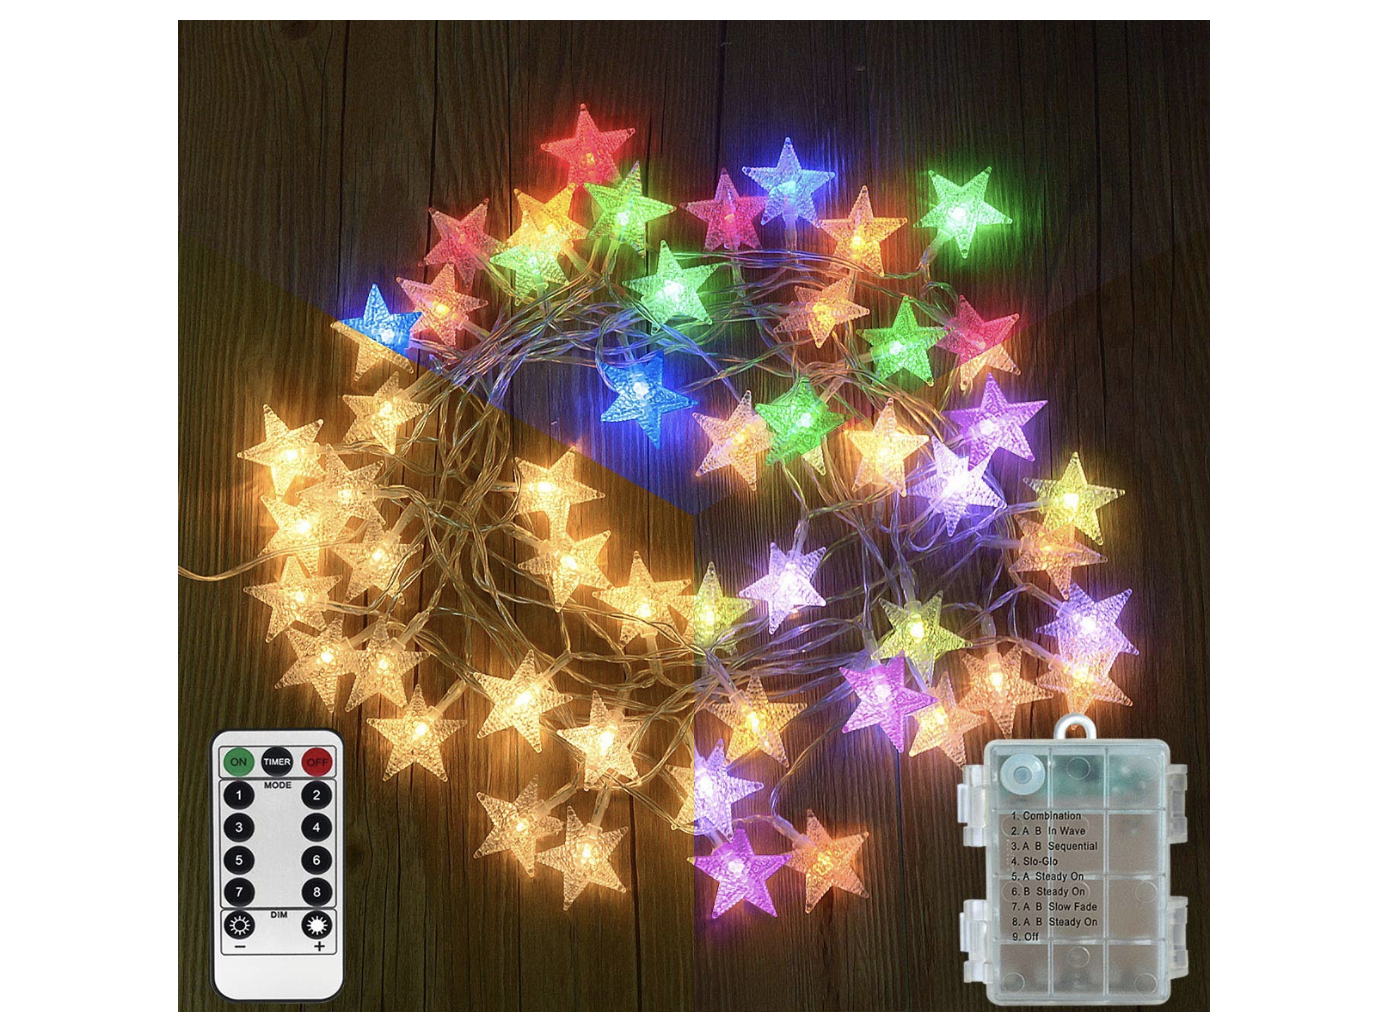 Top 10 Best Christmas Lights of 2020 Review